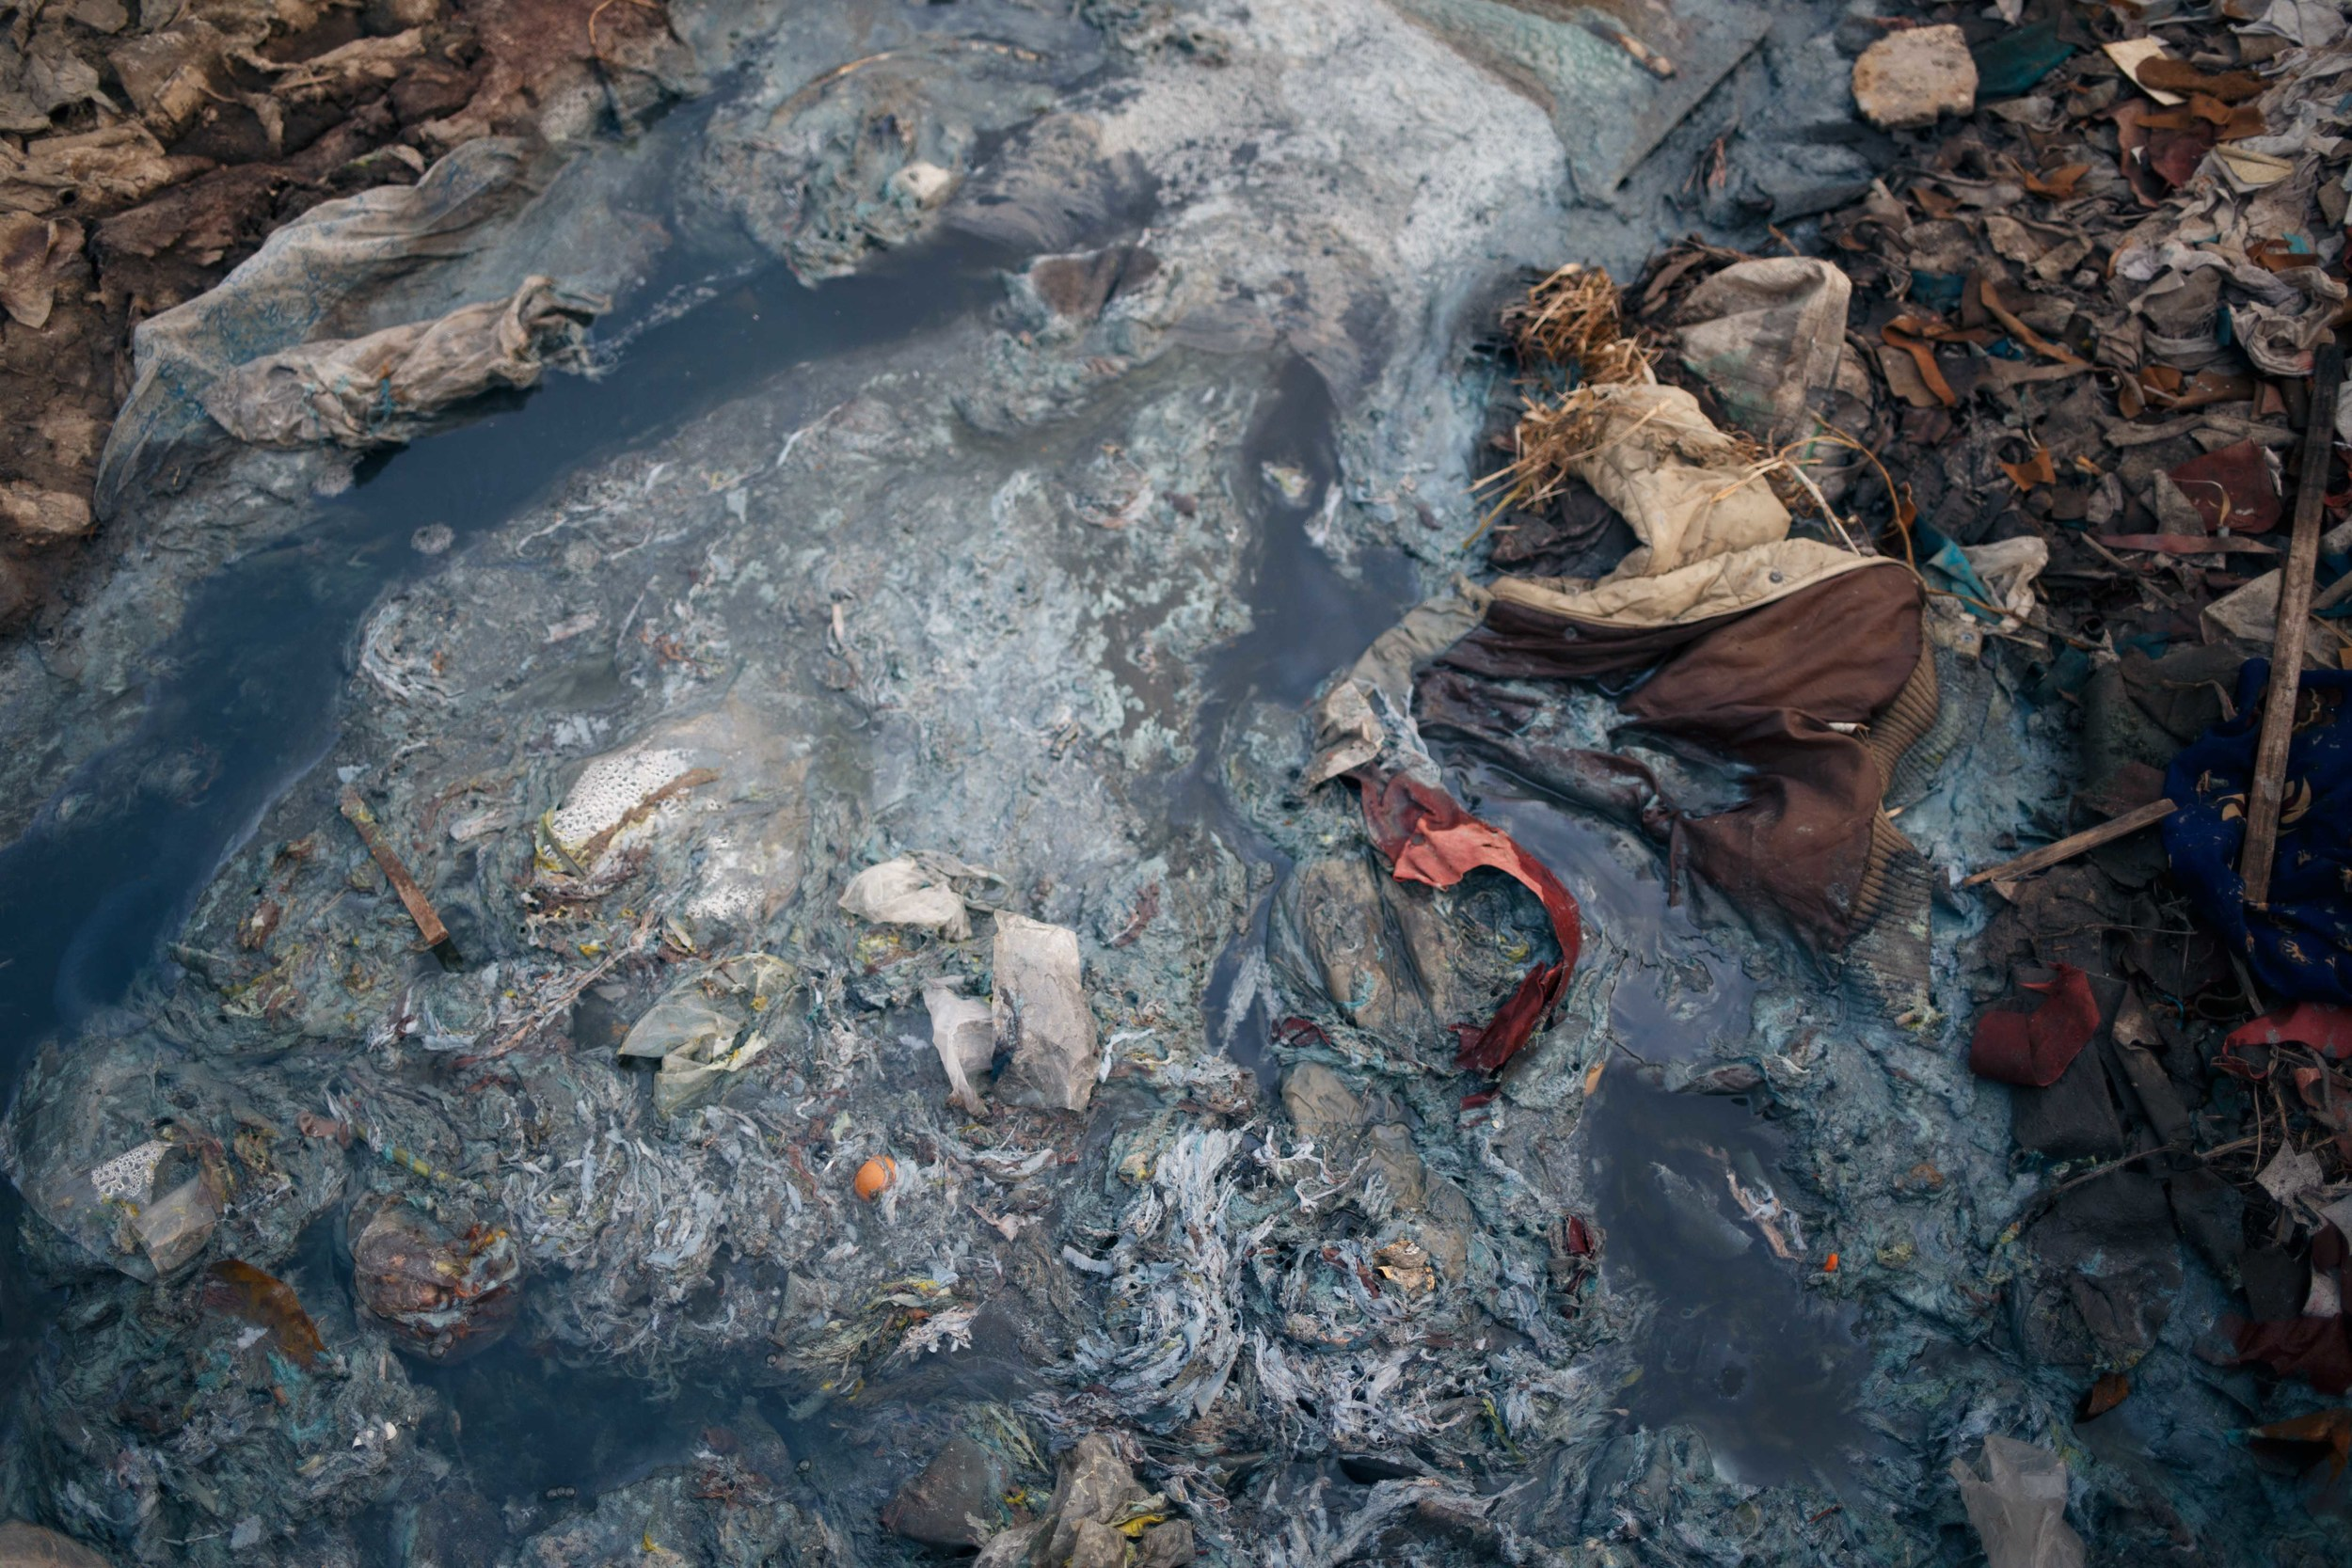 A closer look at the runoff water from the tanneries. Toxic water, plastic, animal and human waste, all flow together into the Buriganga. Residents of Hazaribagh fish in the river and ingest some of the chemicals released by the tanneries elevating their risk of fatal diseases.